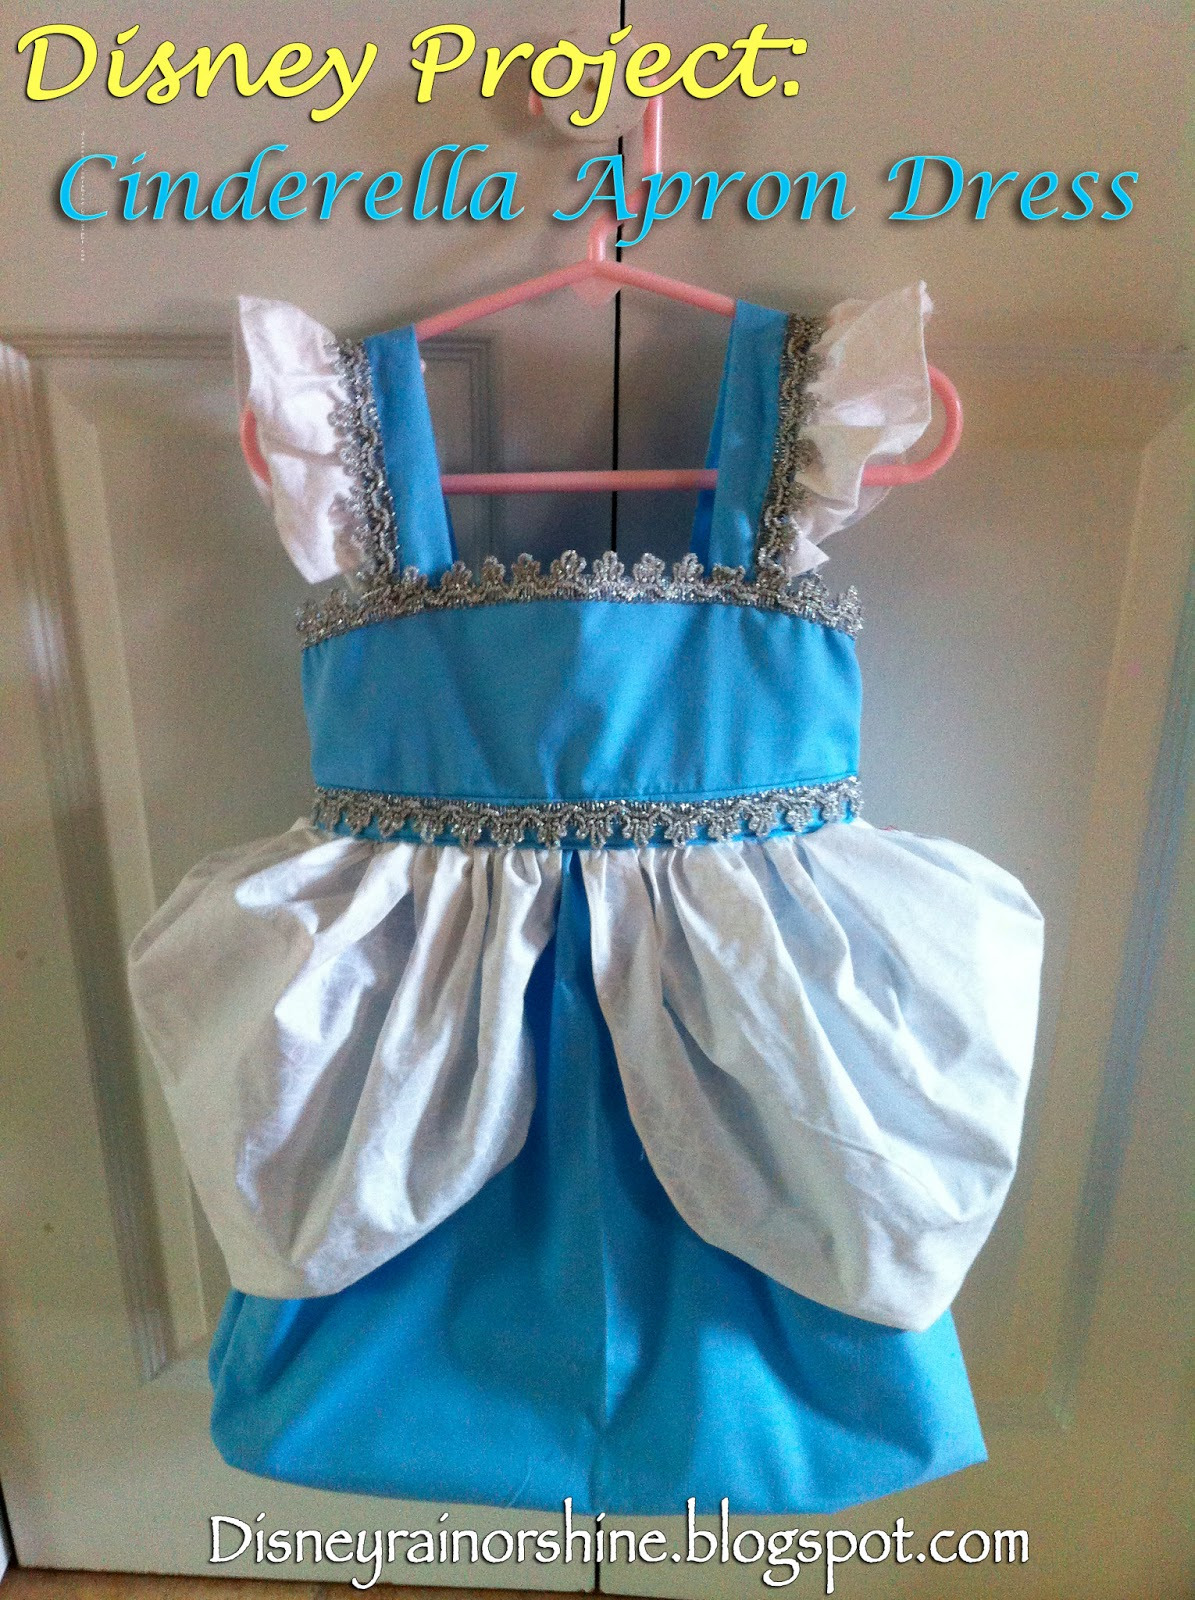 White apron hobby lobby - Dress Cinderella Apron Dress Sewing Pattern Mccall 6619 Fabric Used Hobby Lobby And Joann